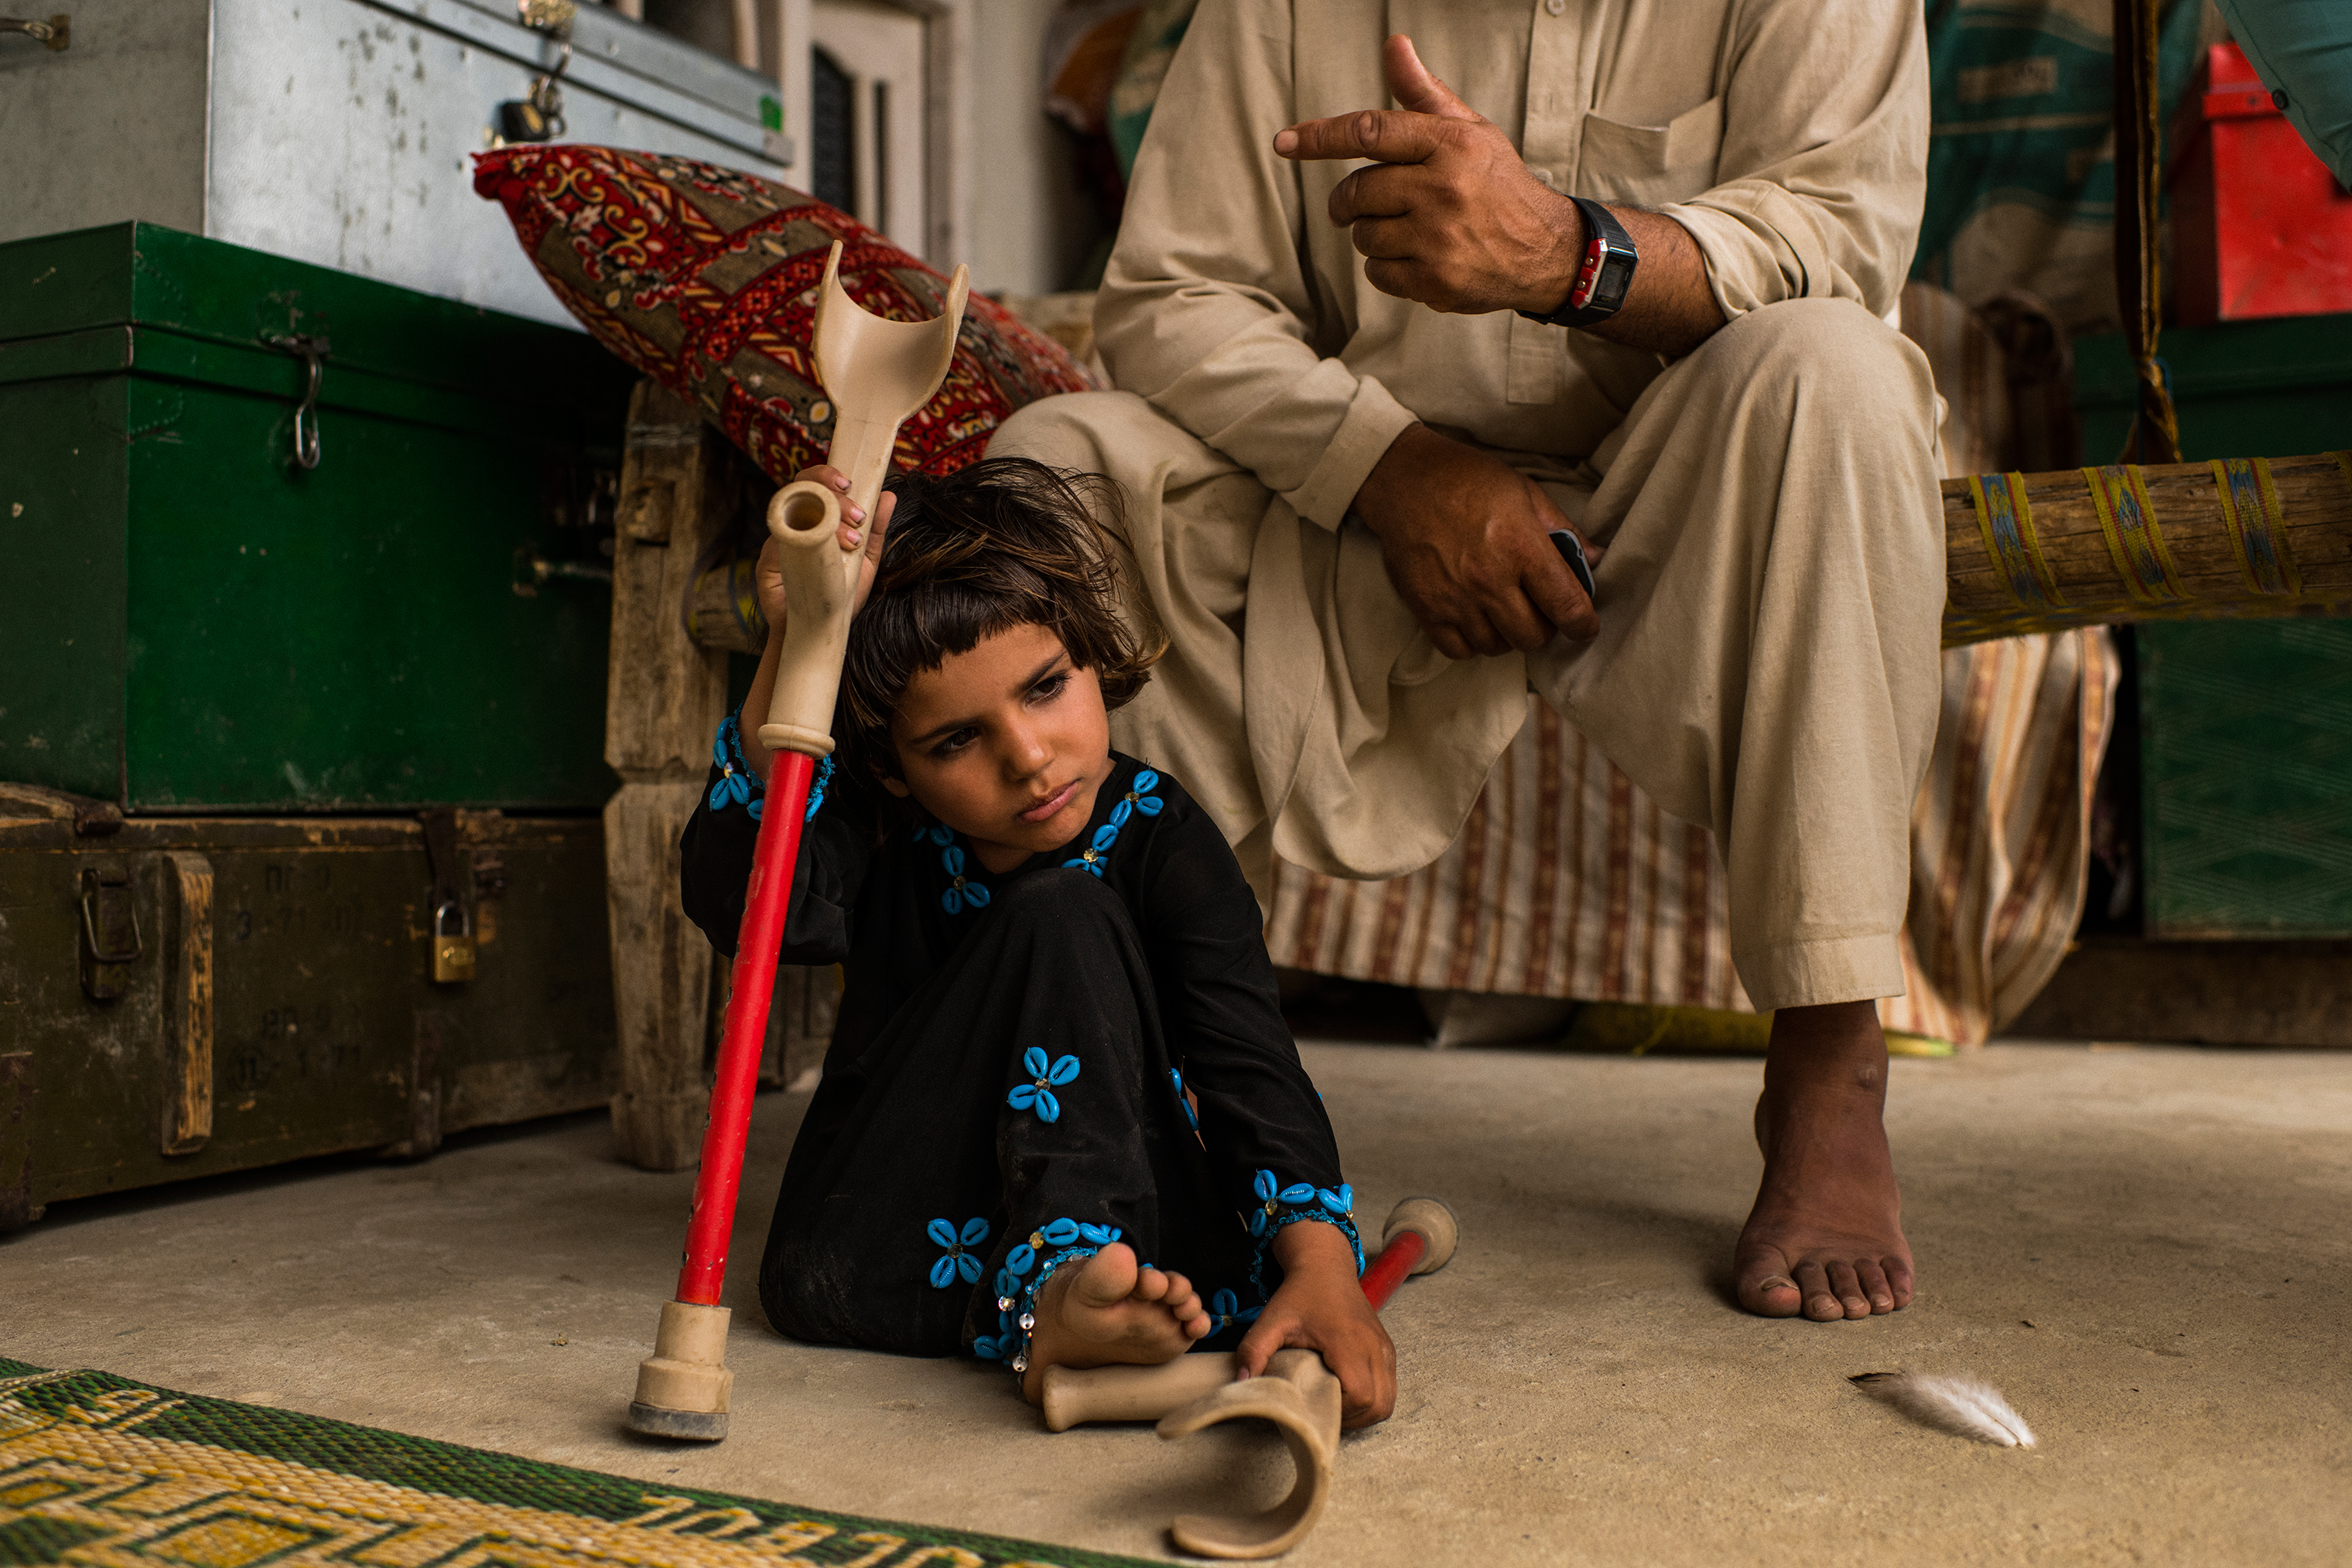 Marwa with her crutches in July. Her mother and twin sister were killed in the blast that led to the loss of part of her right leg.